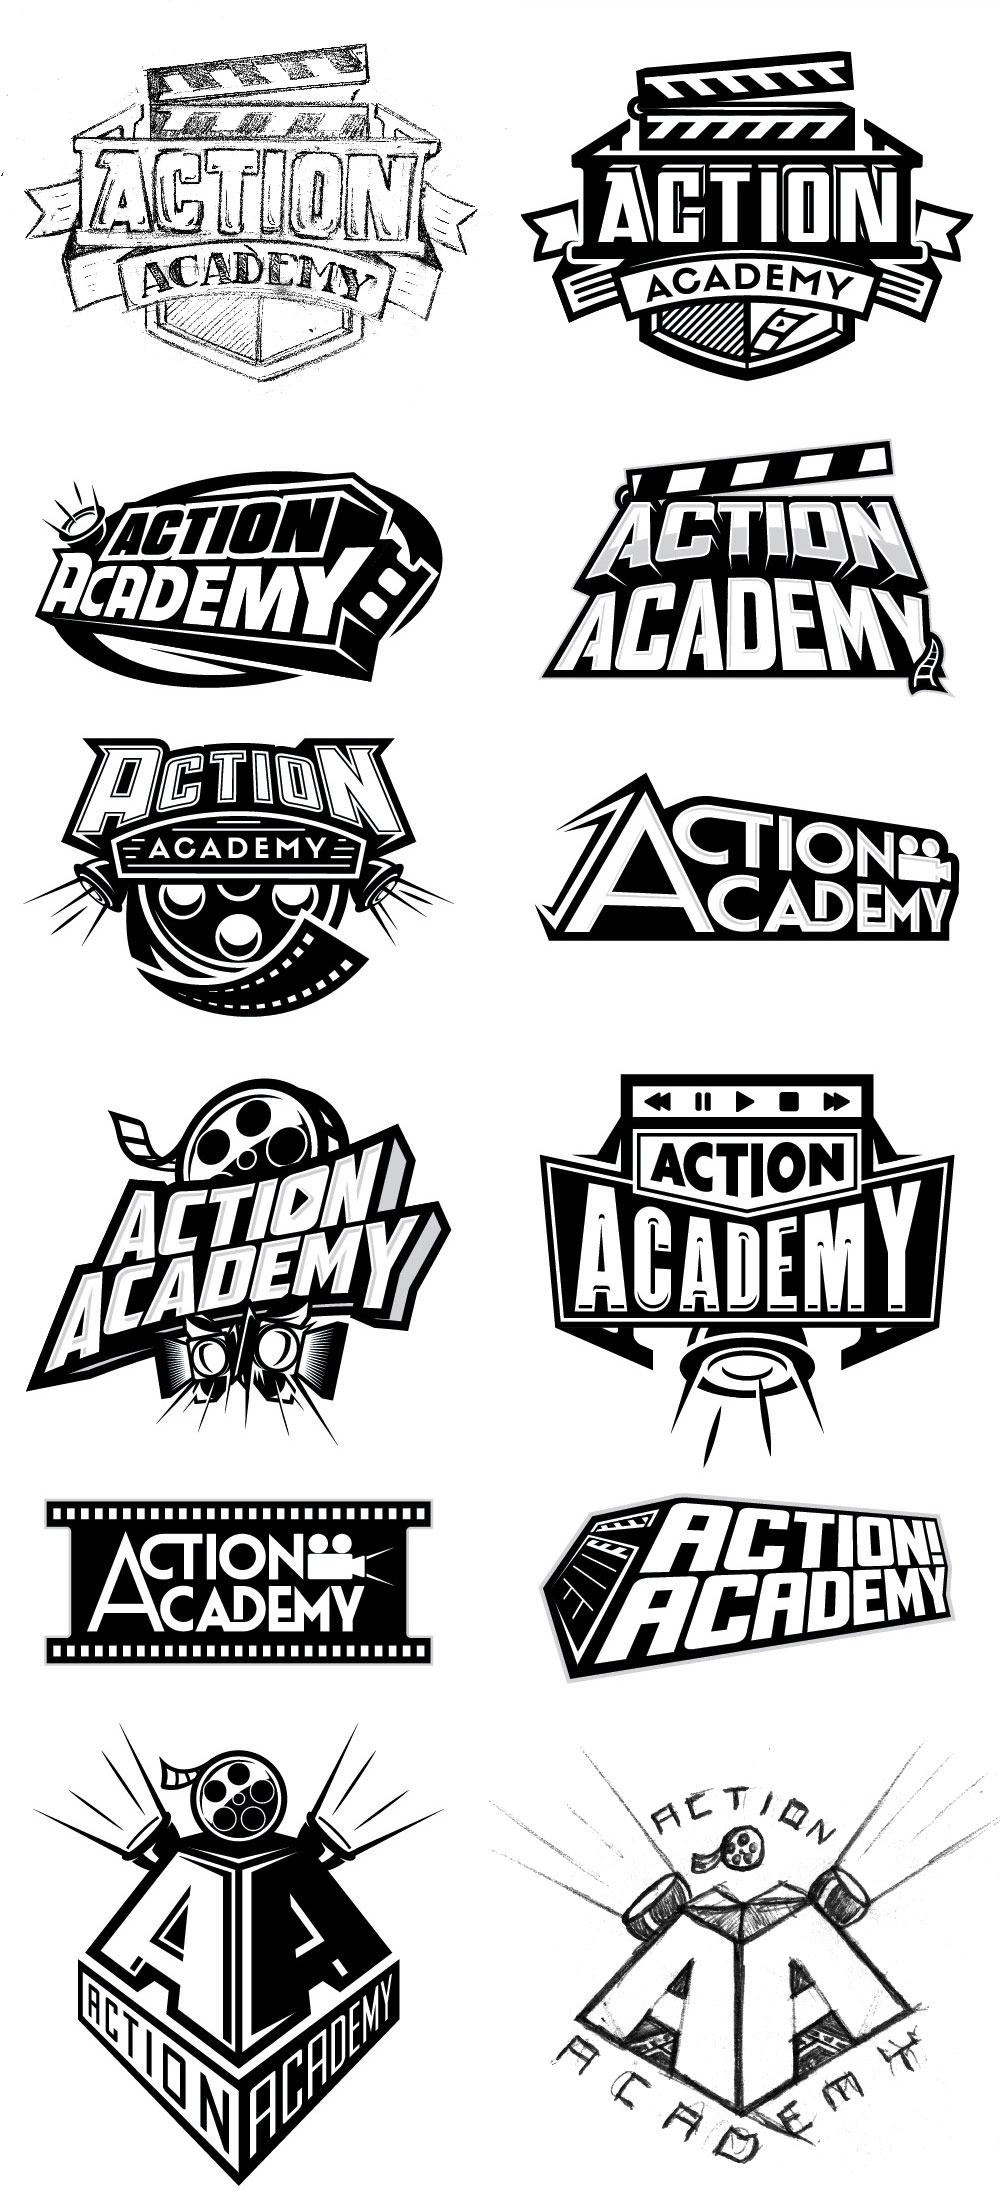 ActionAcademy_01.jpg